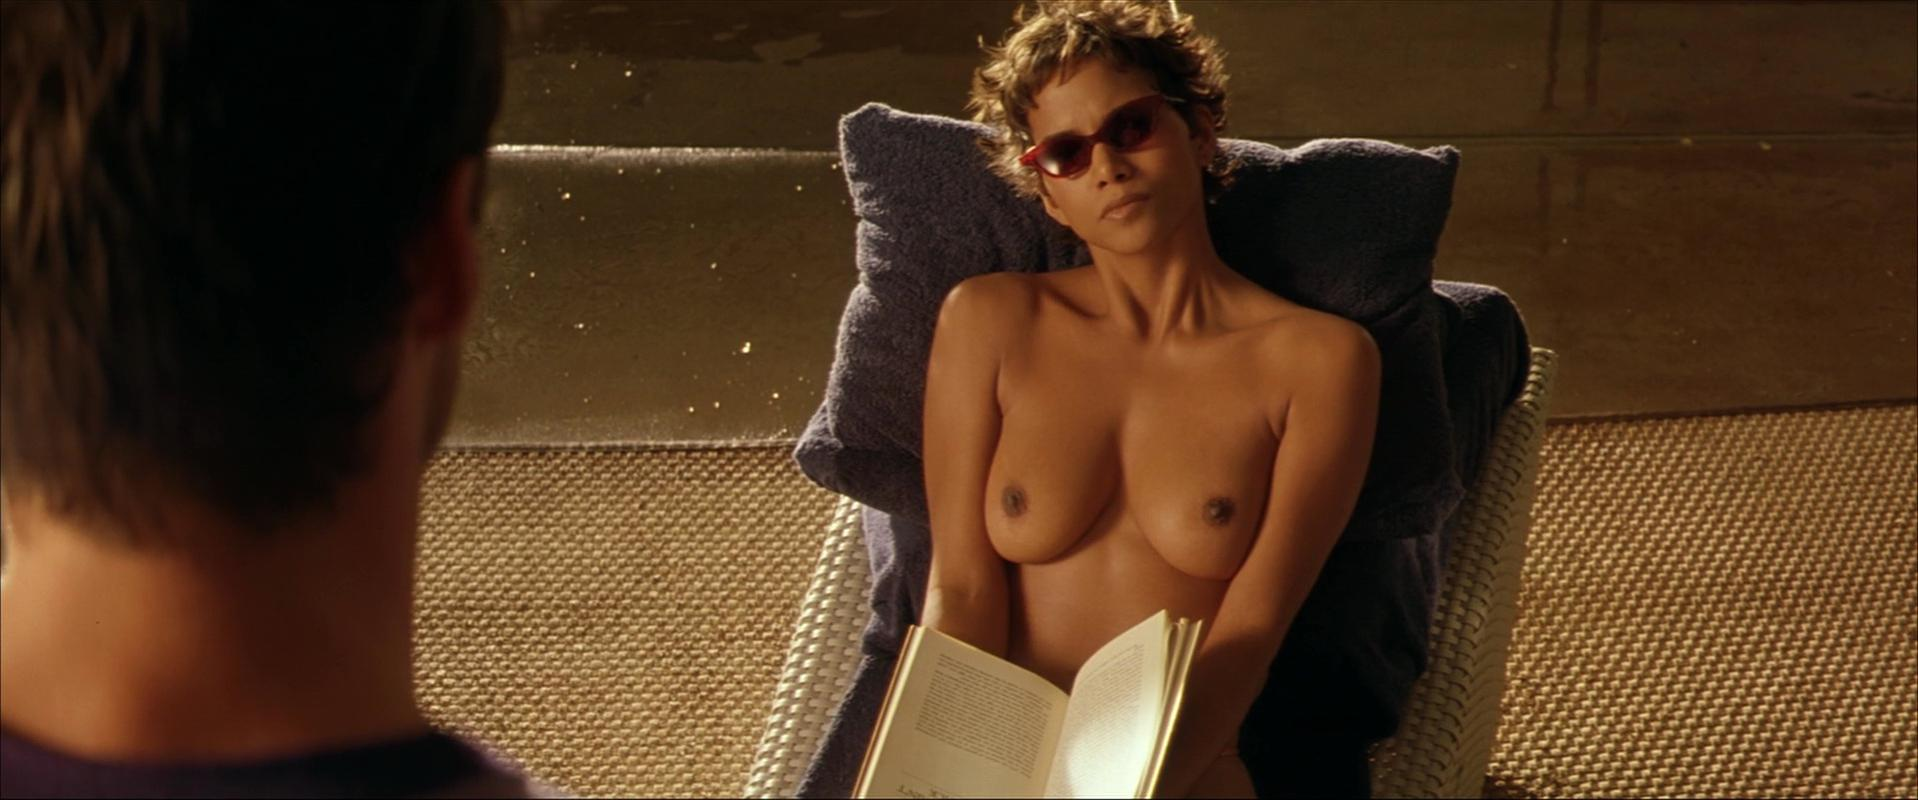 Hally berry breasts naked